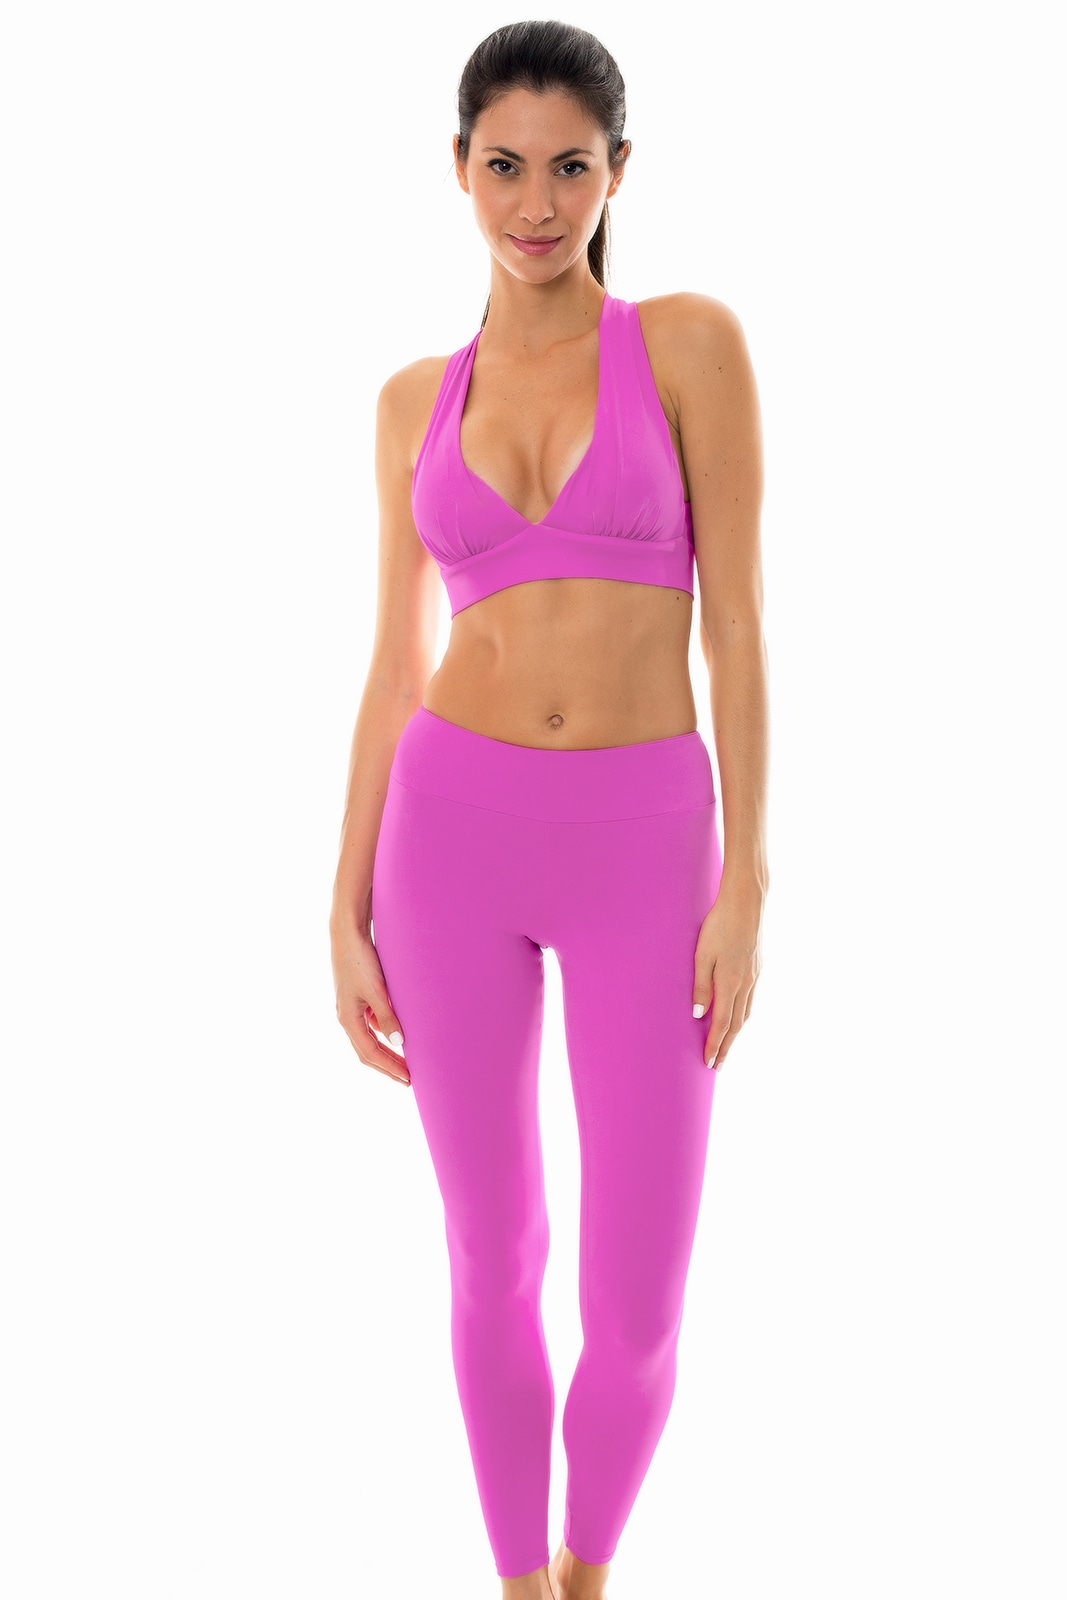 59c6836ba927b Fitness Set Pink Sports Bra And Leggings Set - Nz Glam Fitness